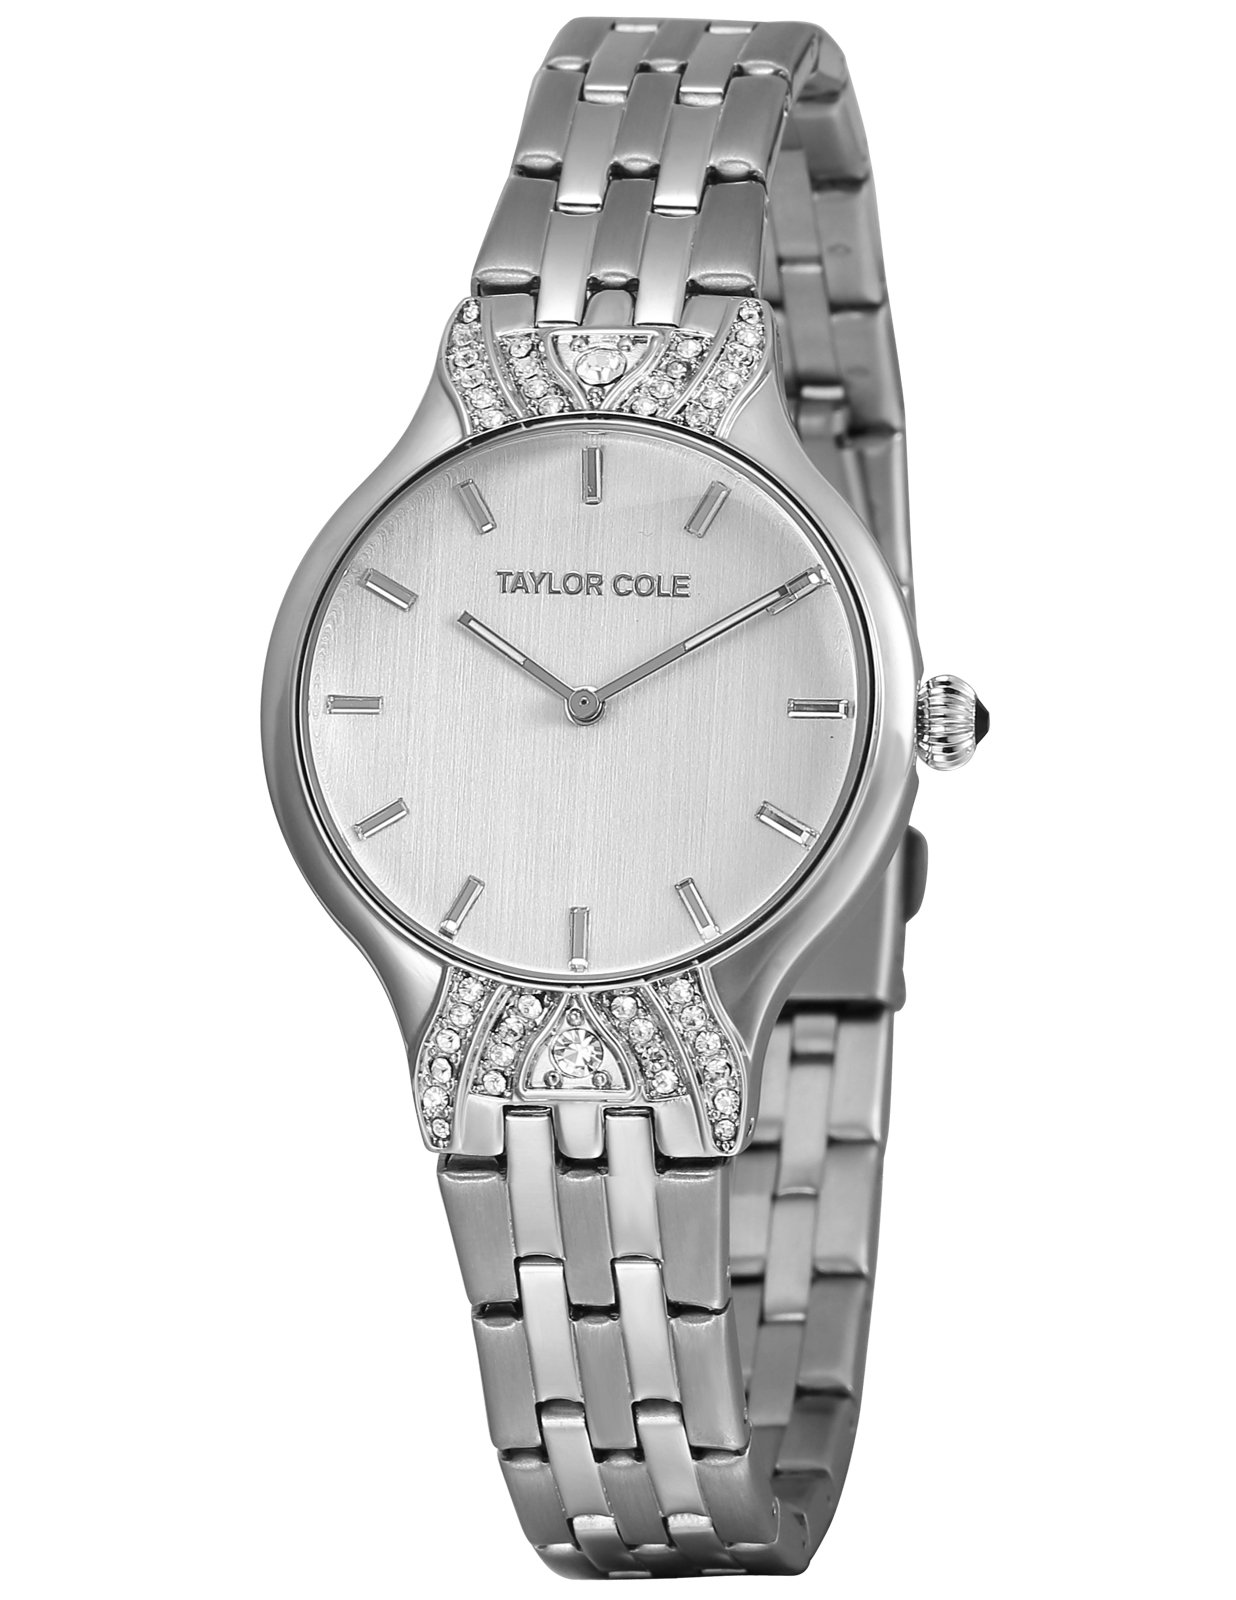 TAYLOR COLE Women Bling White Dial Watch, Echo Lady Girl Crystal Analog Quartz Silver Bracelet Band Stainless Steel Wrist Watch, Wedding Holiday Birthday Groom